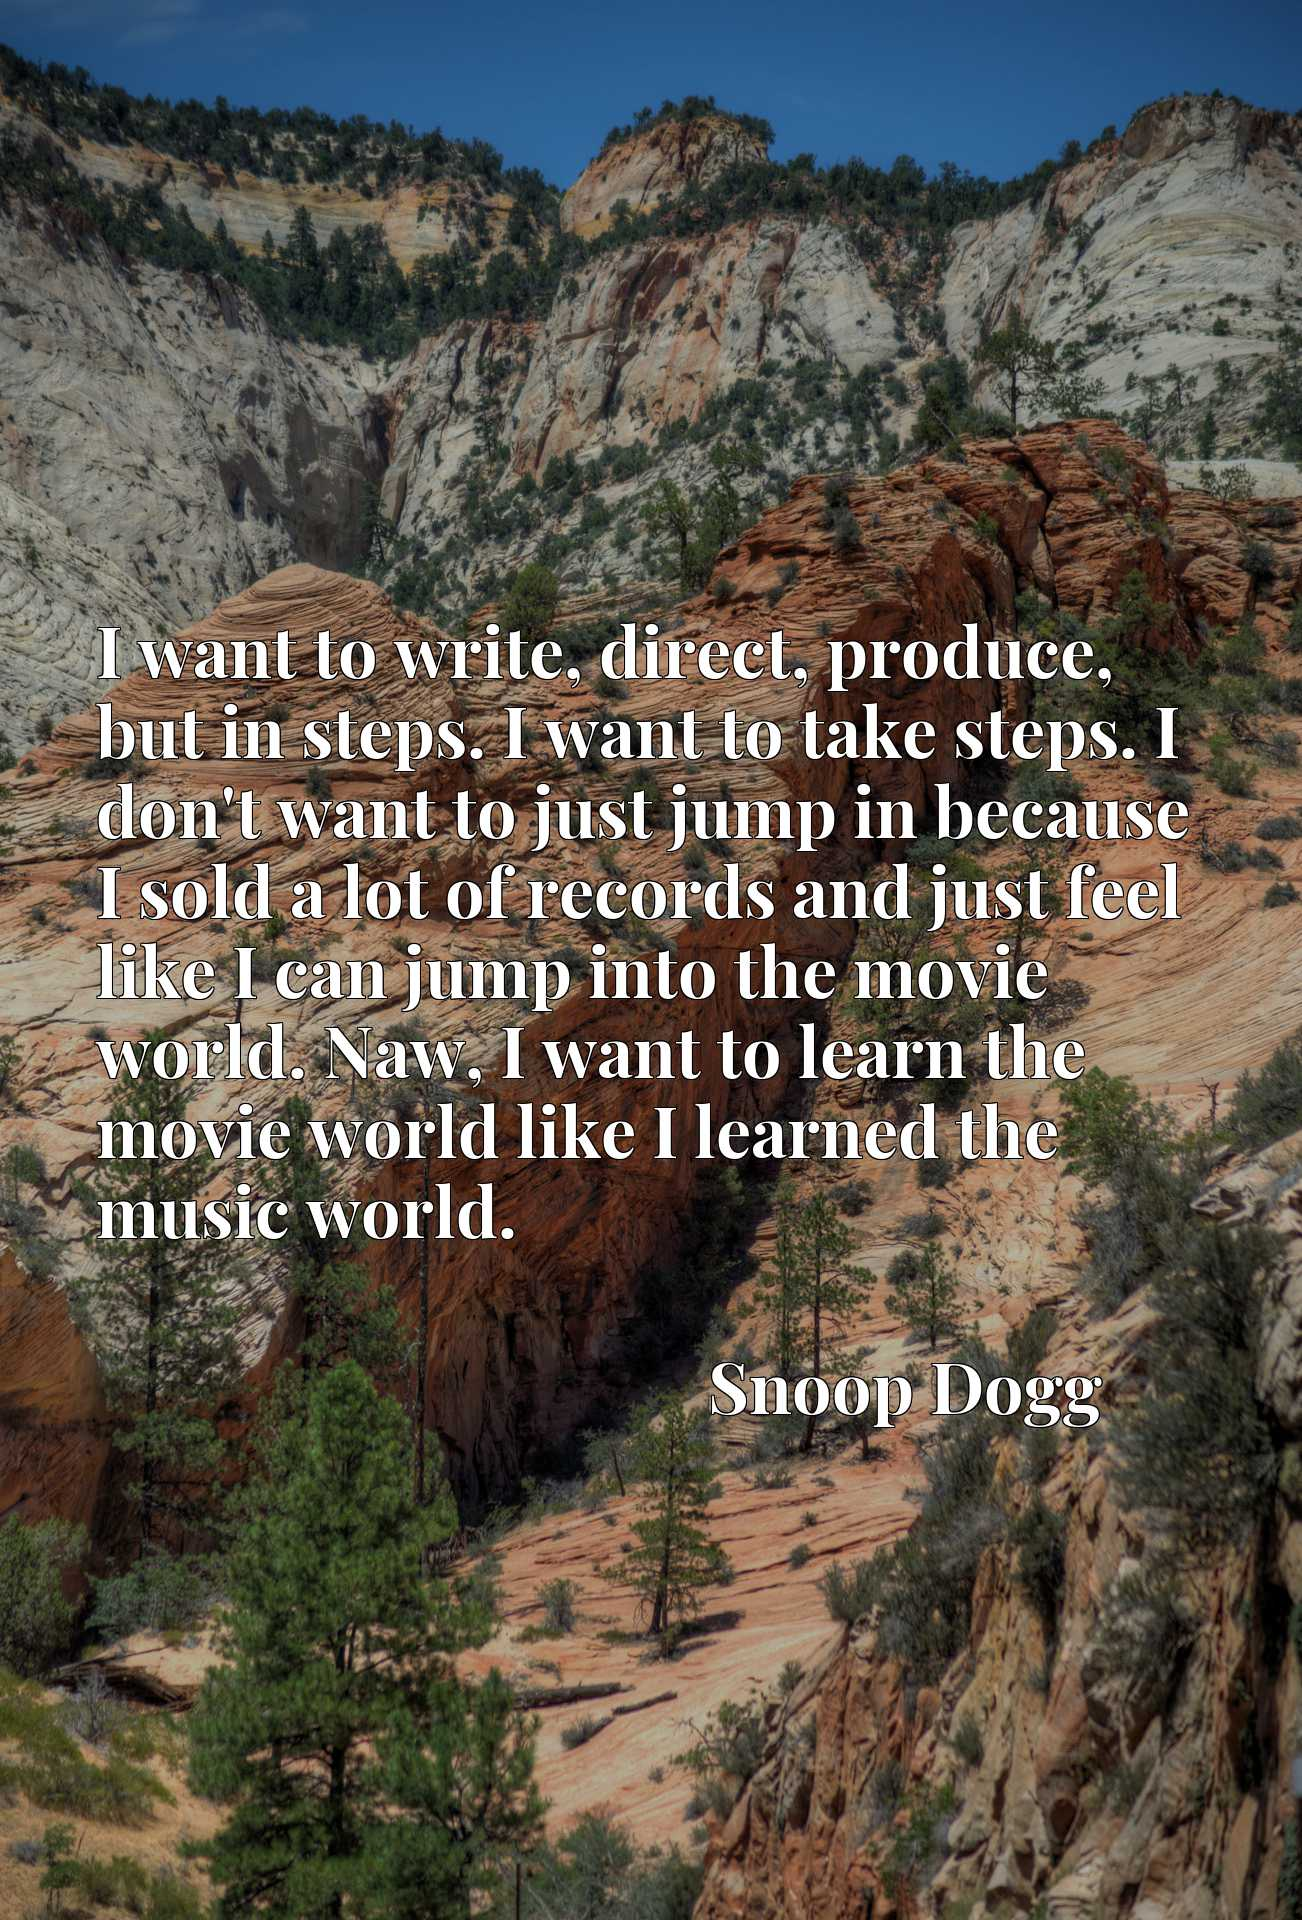 I want to write, direct, produce, but in steps. I want to take steps. I don't want to just jump in because I sold a lot of records and just feel like I can jump into the movie world. Naw, I want to learn the movie world like I learned the music world.